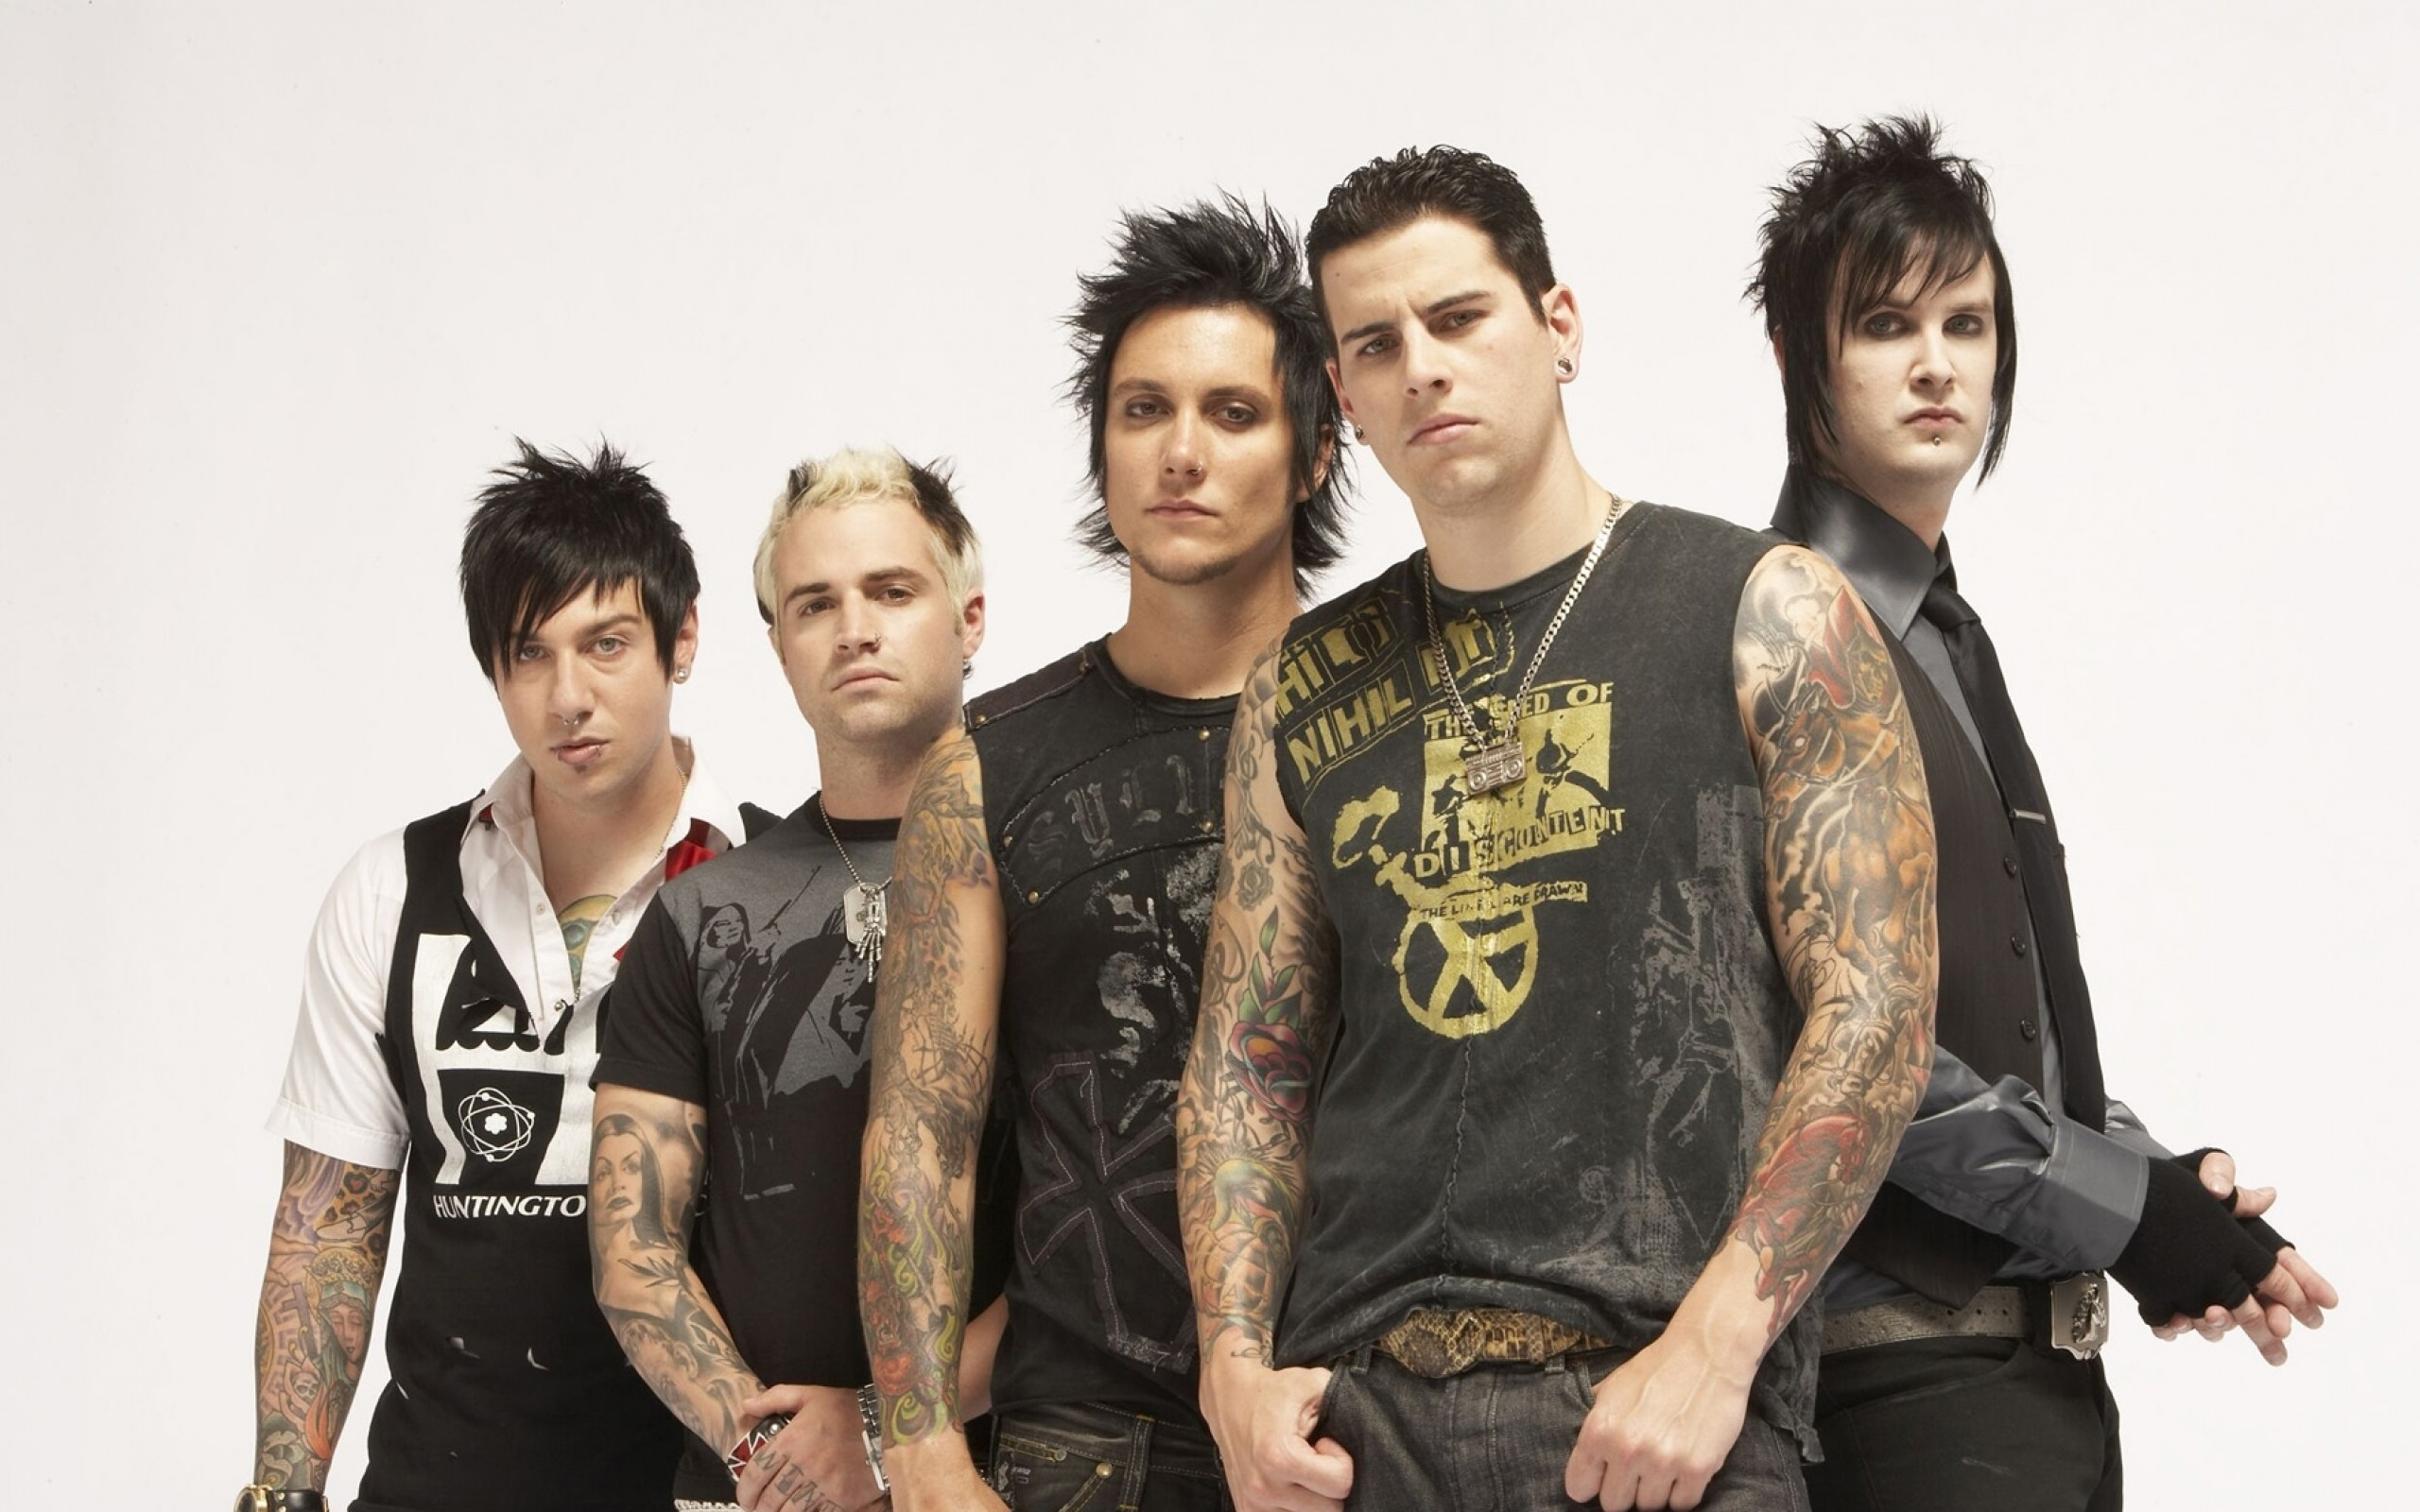 The Rev Wallpaper 64 images 2560x1600